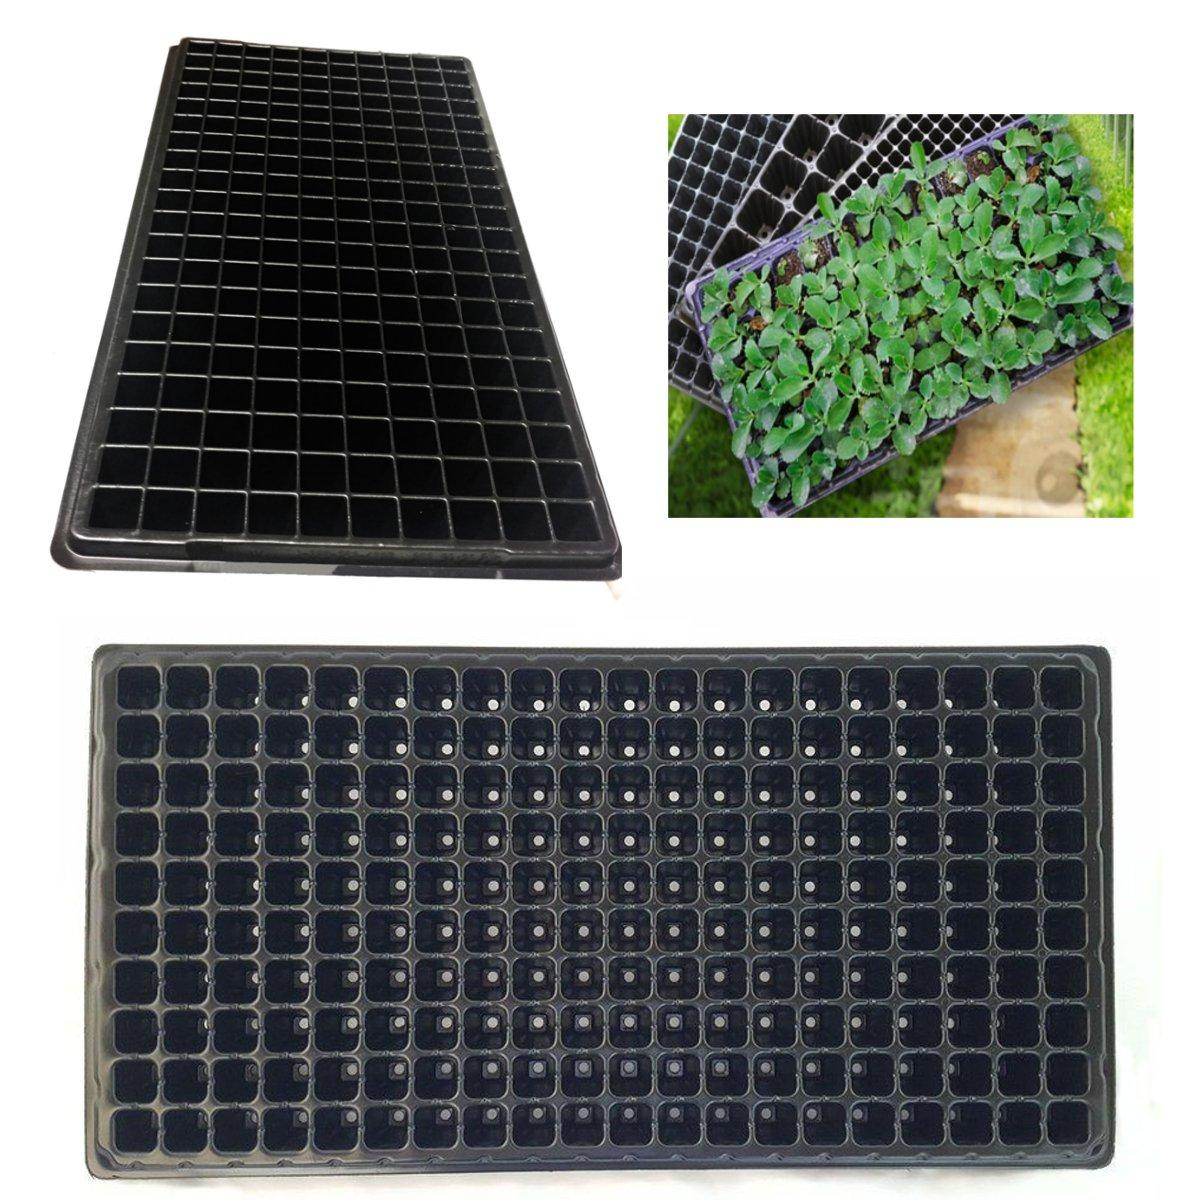 200 Holes Planting Seeds Grow Box Insert Propagation Nursery Seeding Starter